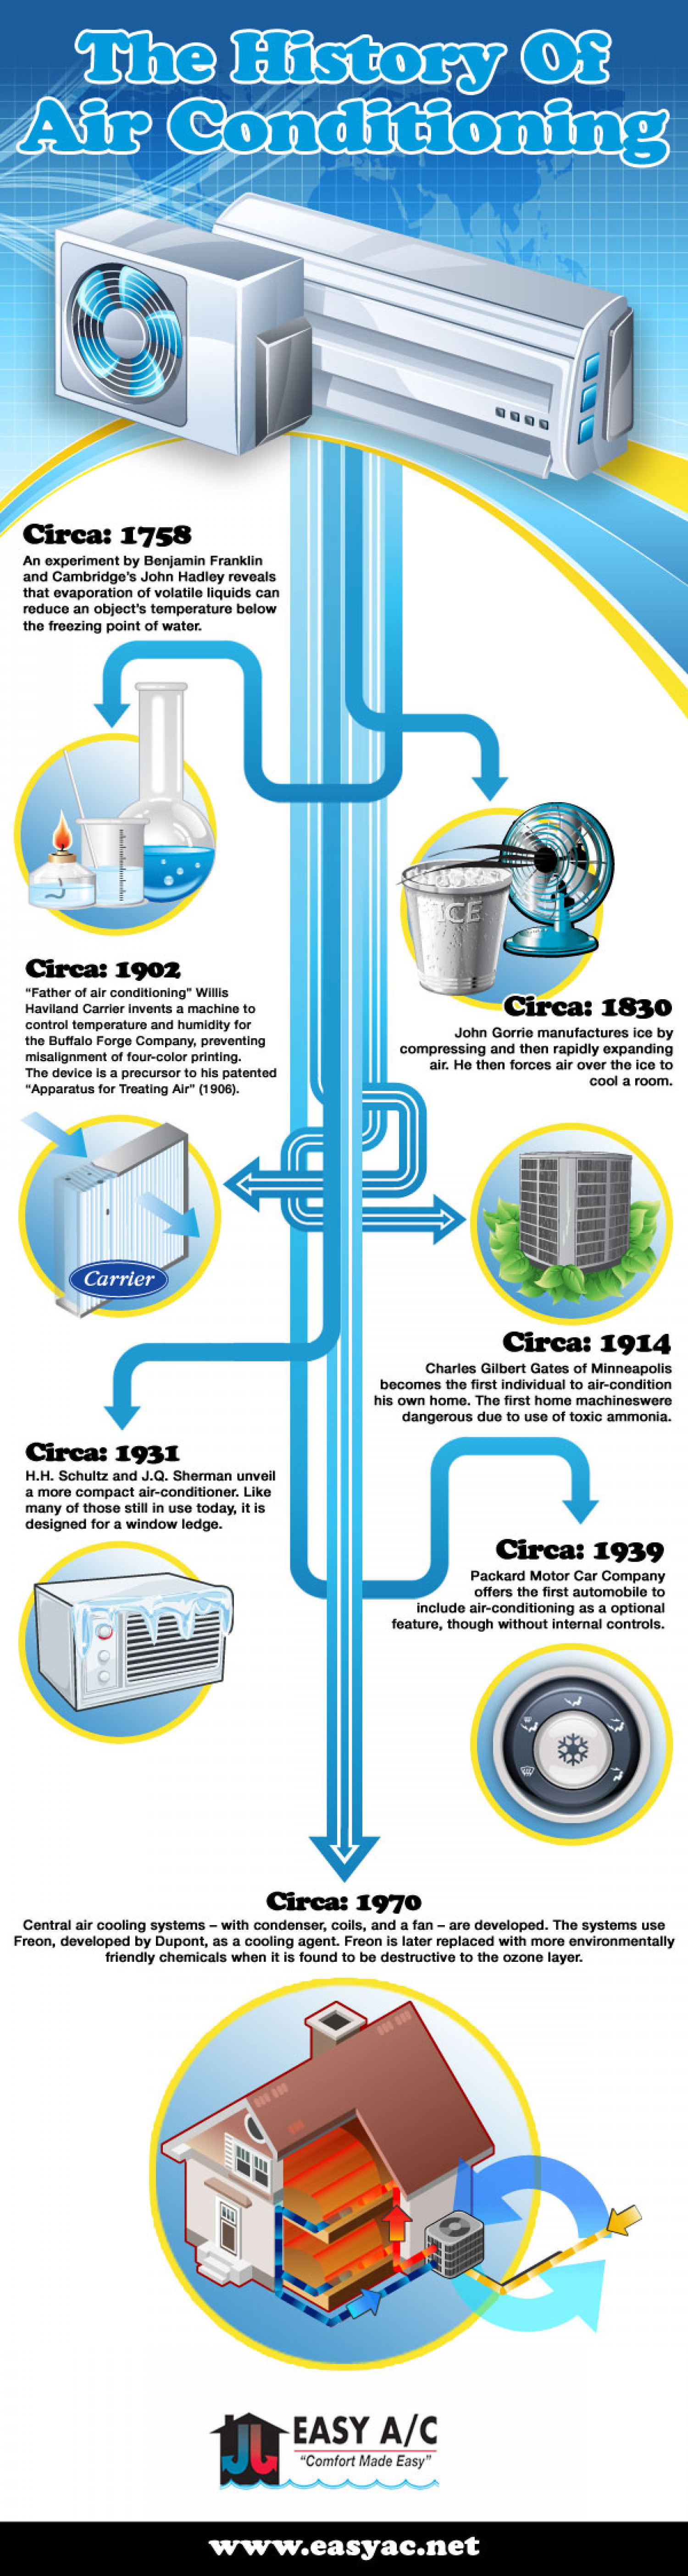 The History of Air Conditioning Infographic